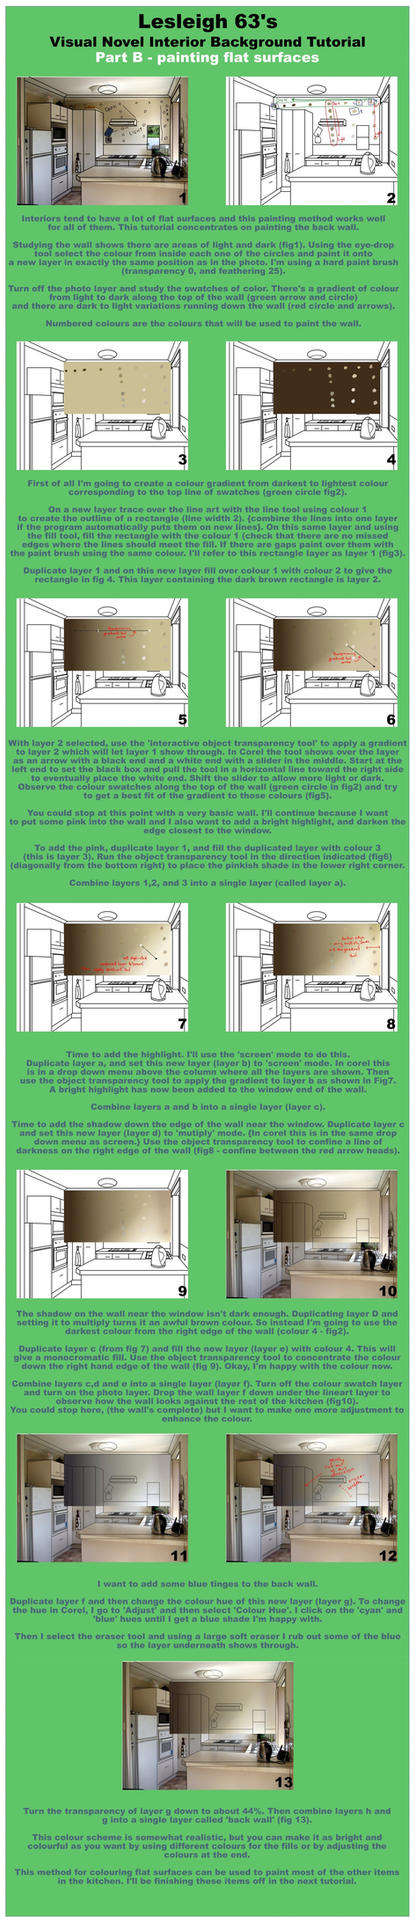 VN 2d background interior tutorial - Part B by Lesleigh63